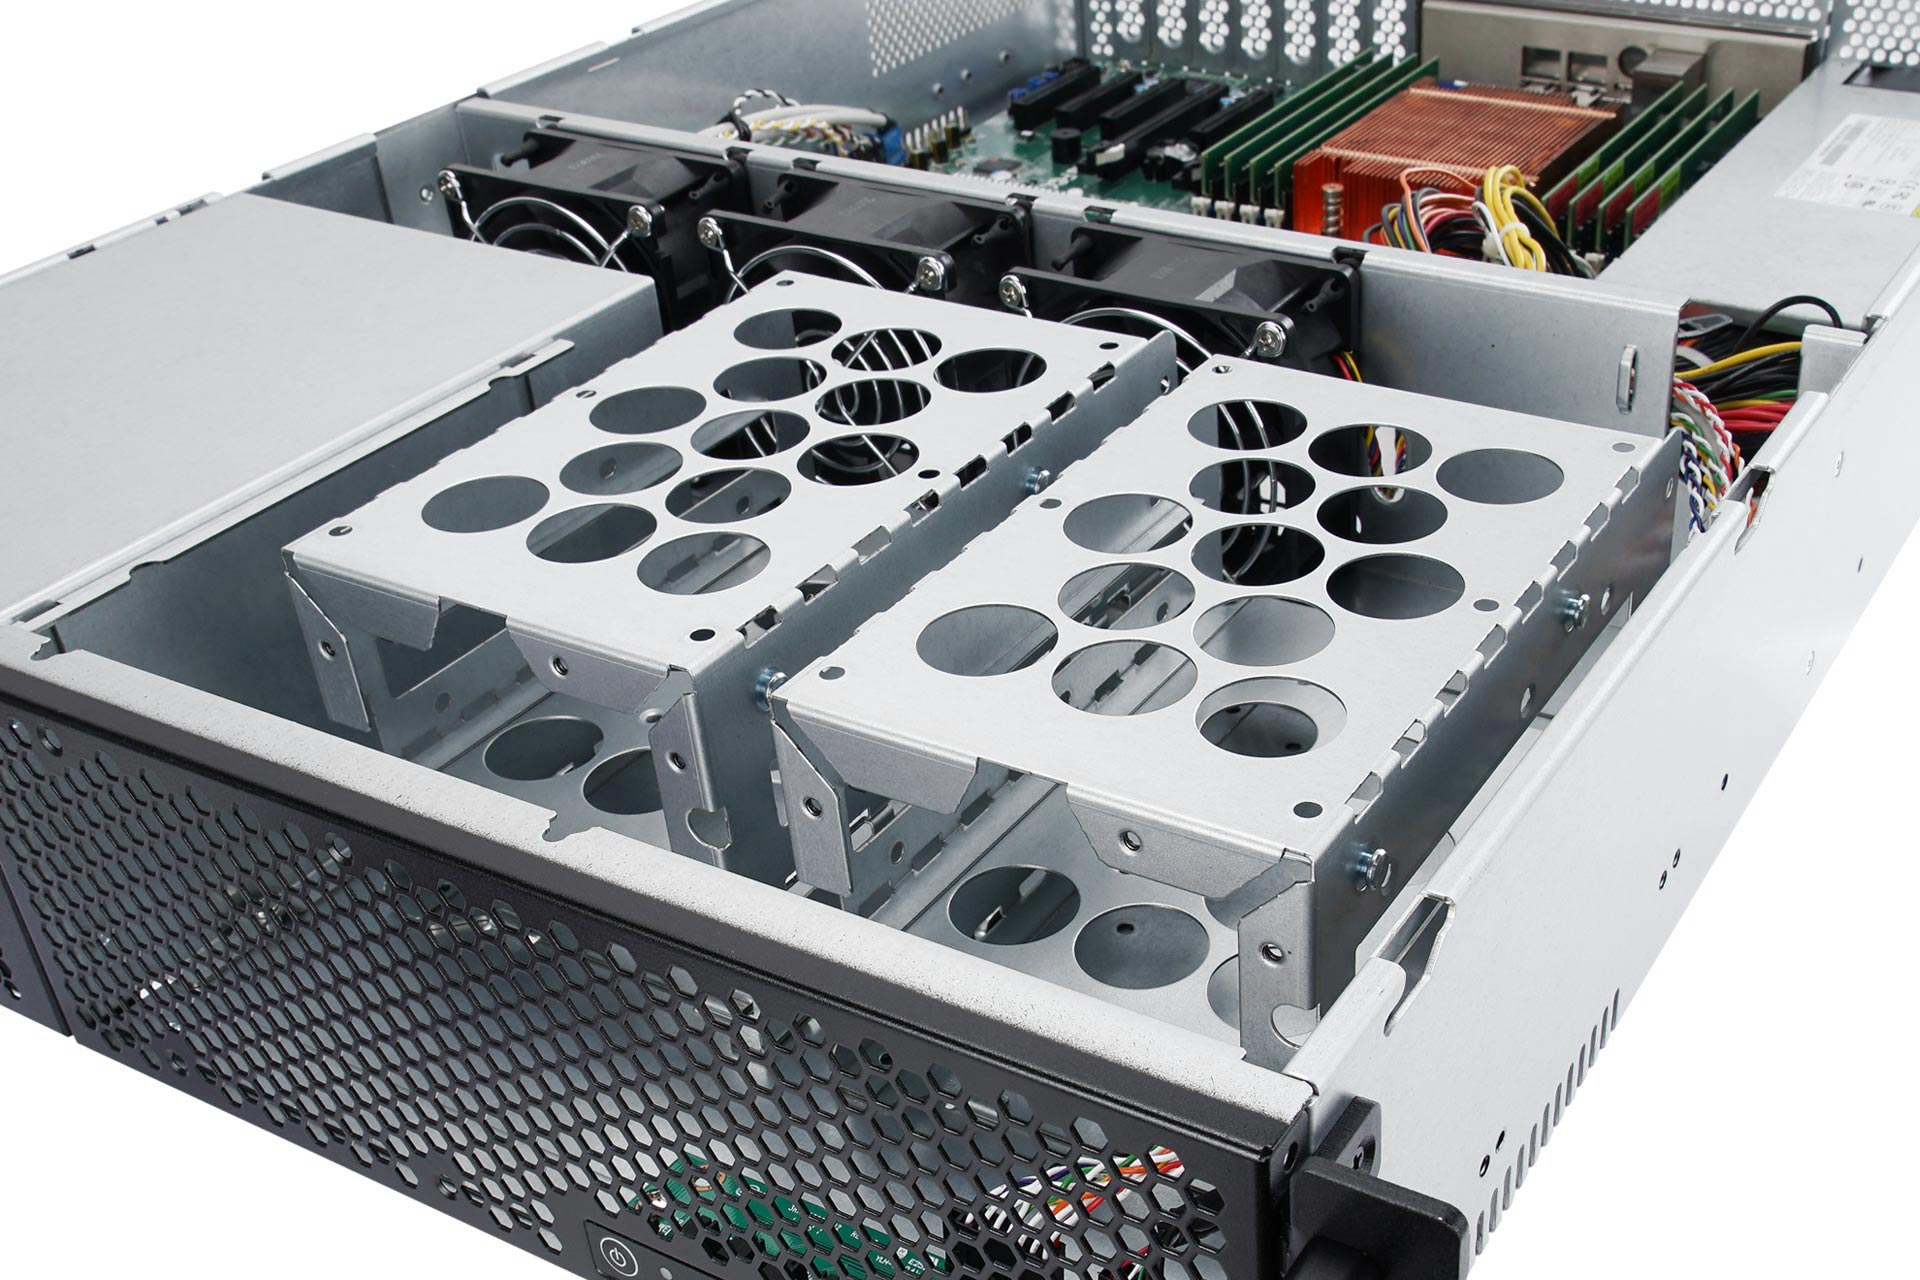 IW-R200N - server system assembly